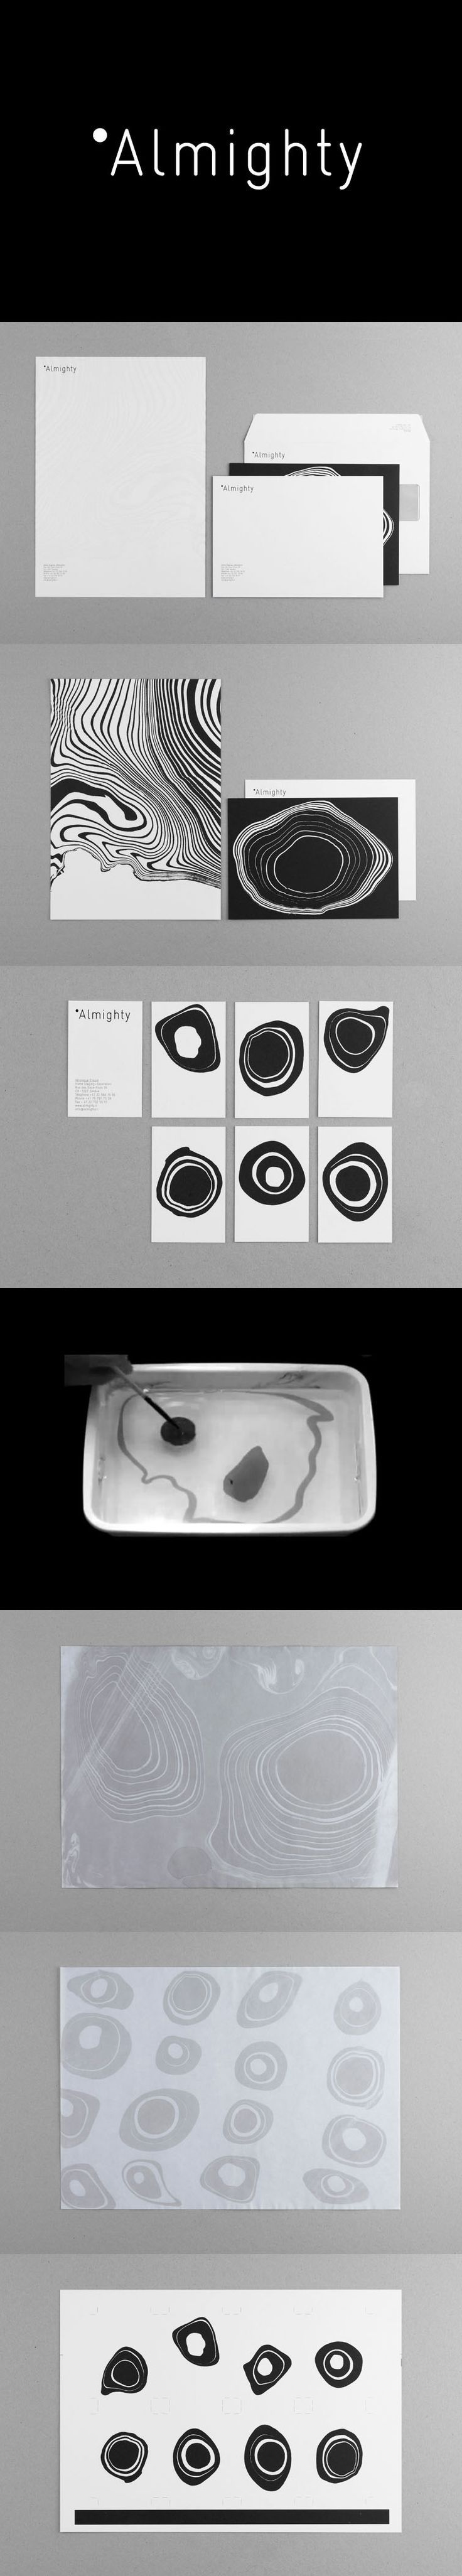 231 Best Animation Research Images On Pinterest 10 Seconds All Almighty 5 In 1 Professional Camera Cleaning Kit Demian Conrad Design Is A Company Specializing Interior And Home Staging That Needed Flexible Contemporary Approach